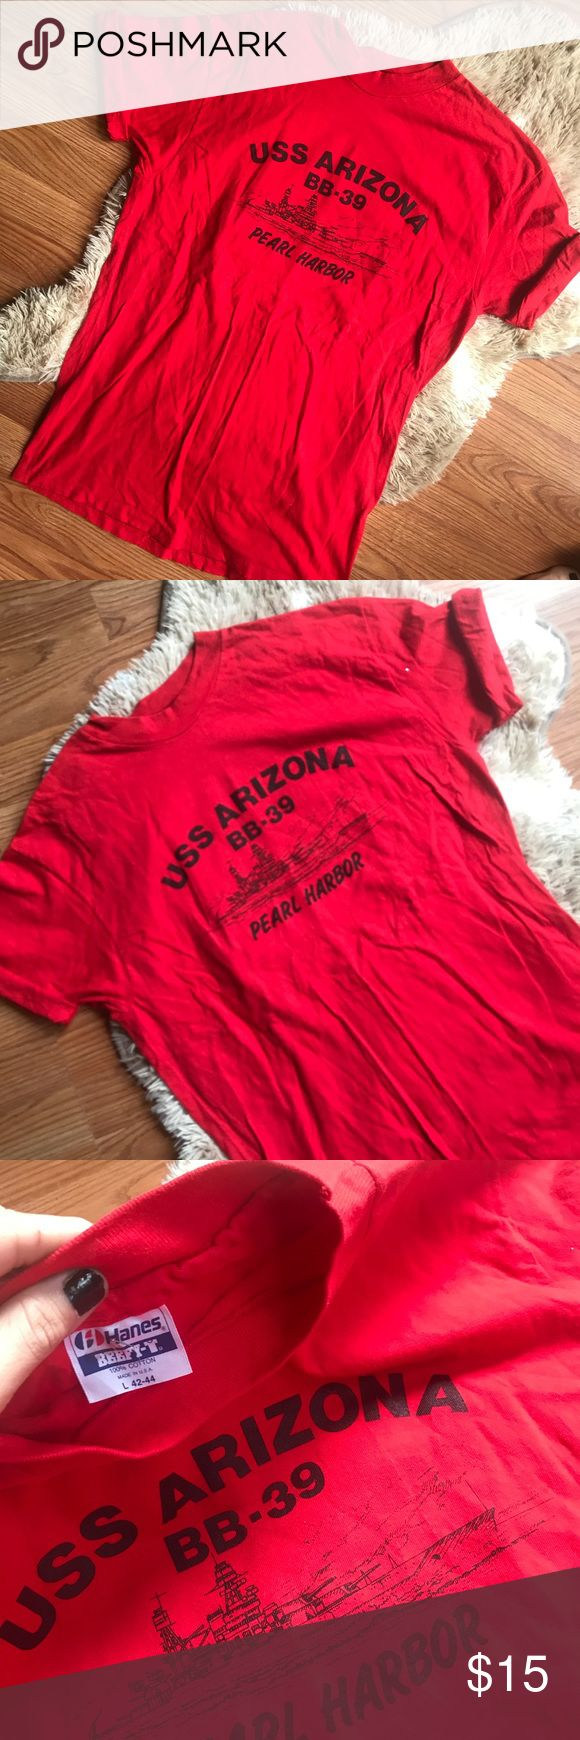 vintage • uss arizona pearl harbor t-shirt RED PEARL HARBOR USS ARIZONA BB-39 MEMORIAL GRAPHIC T-SHIRT • size medium • excellent vintage condition; no holes, stains, cracking or fading • historical  ----- #vintagetee #vintagetshirt #pearlharbor #arizona #memorial #ussarizona #history Vintage Shirts Tees - Short Sleeve